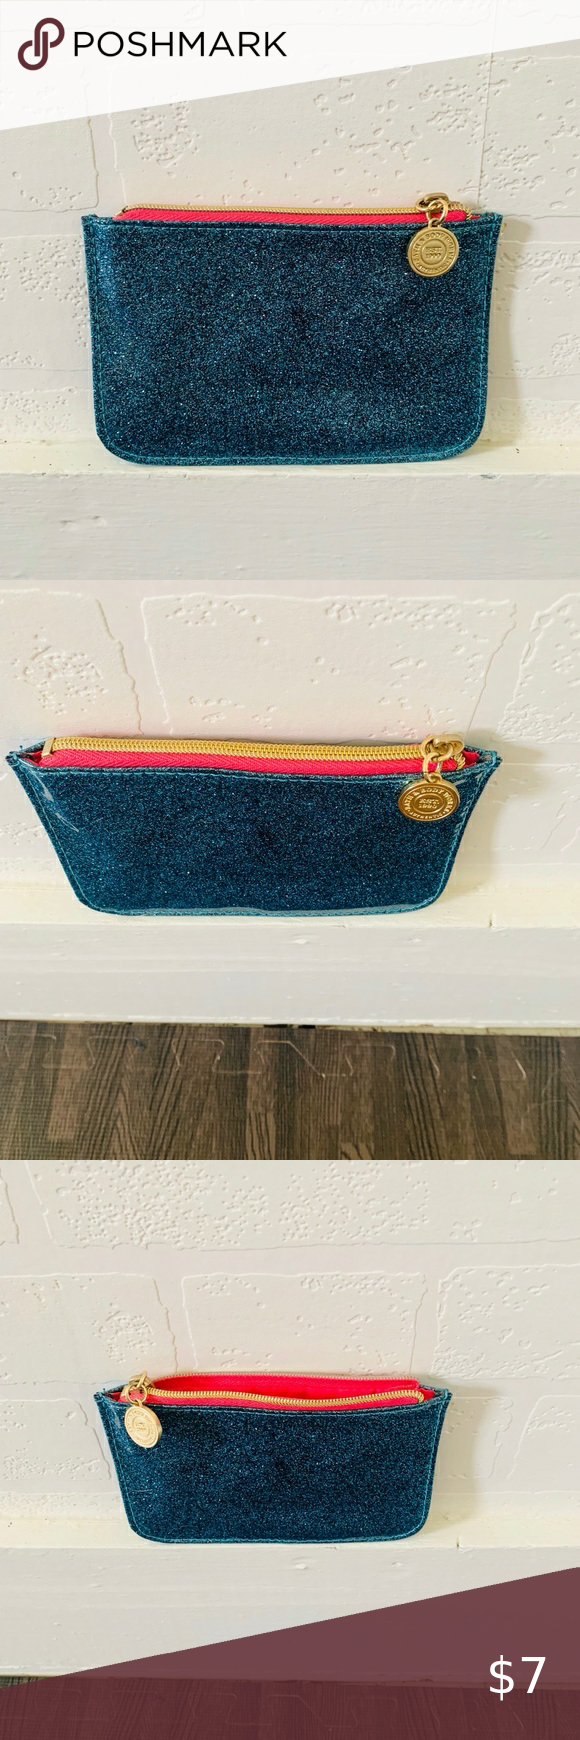 Bed, Bath & Beyond Small Bag/Wallet in 2020 Sparkly